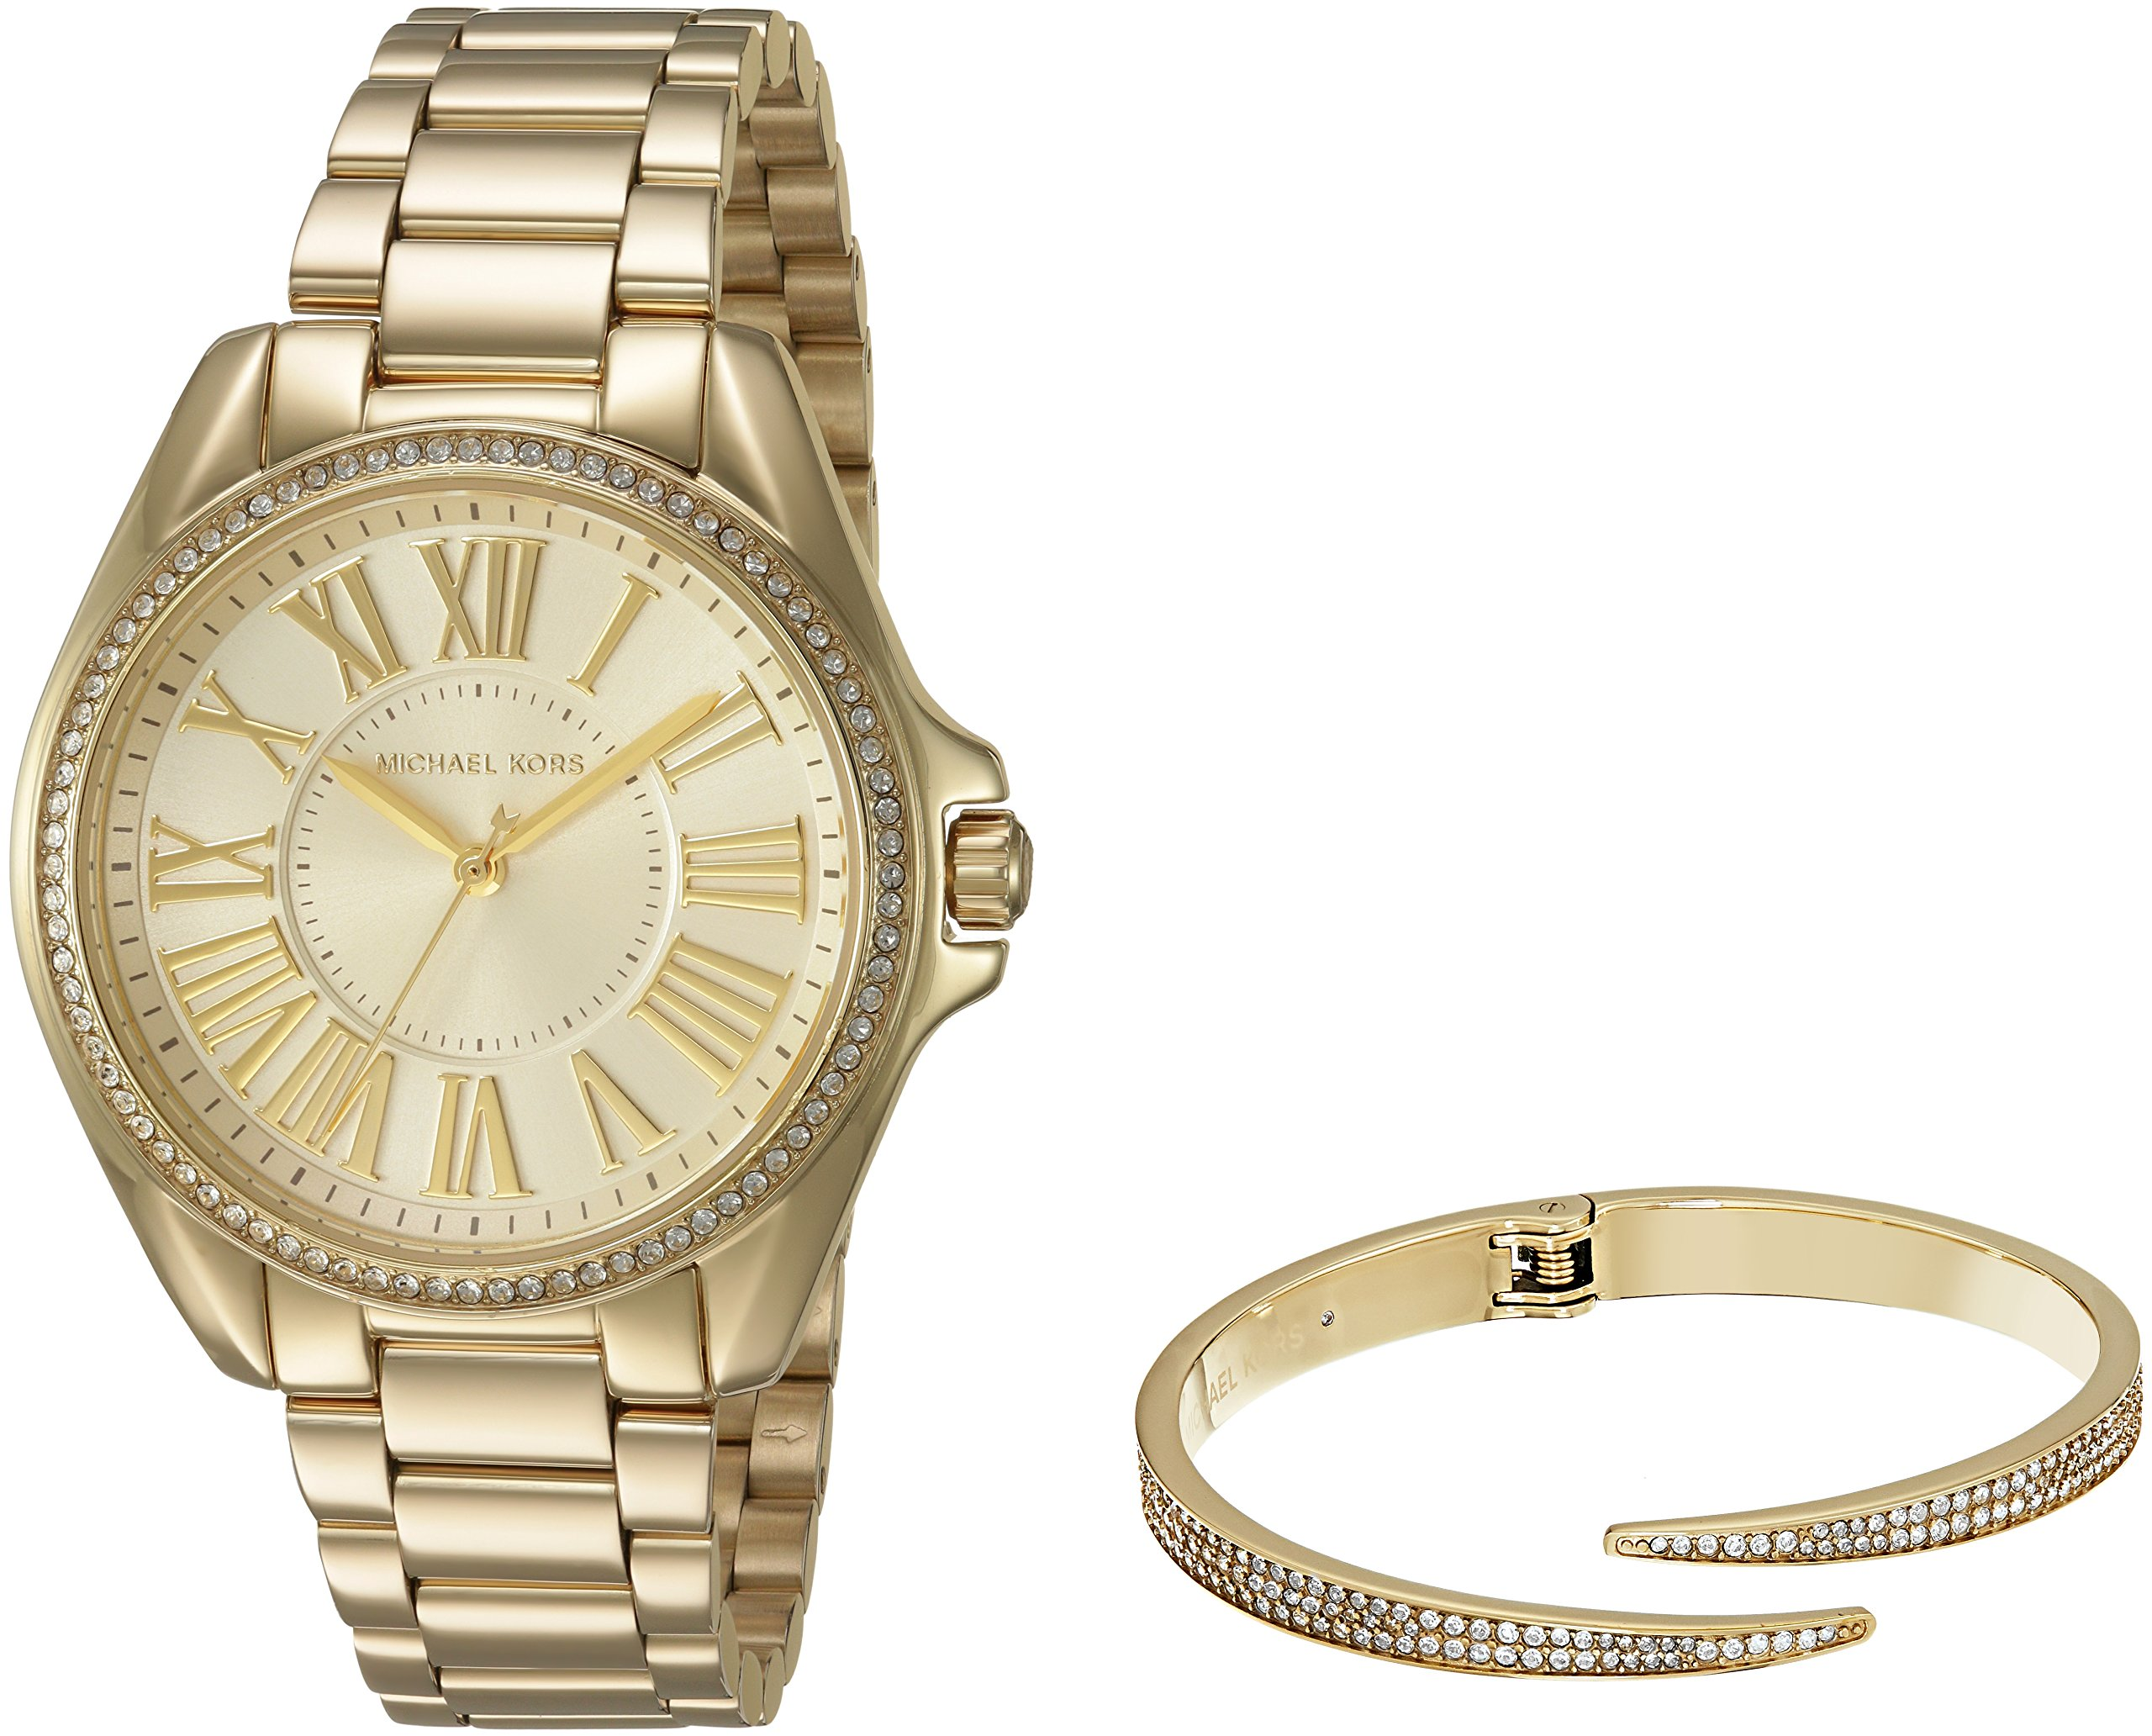 Michael Kors Women's Kacie Gold-Tone Watch and Bracelet Gift Set MK3568